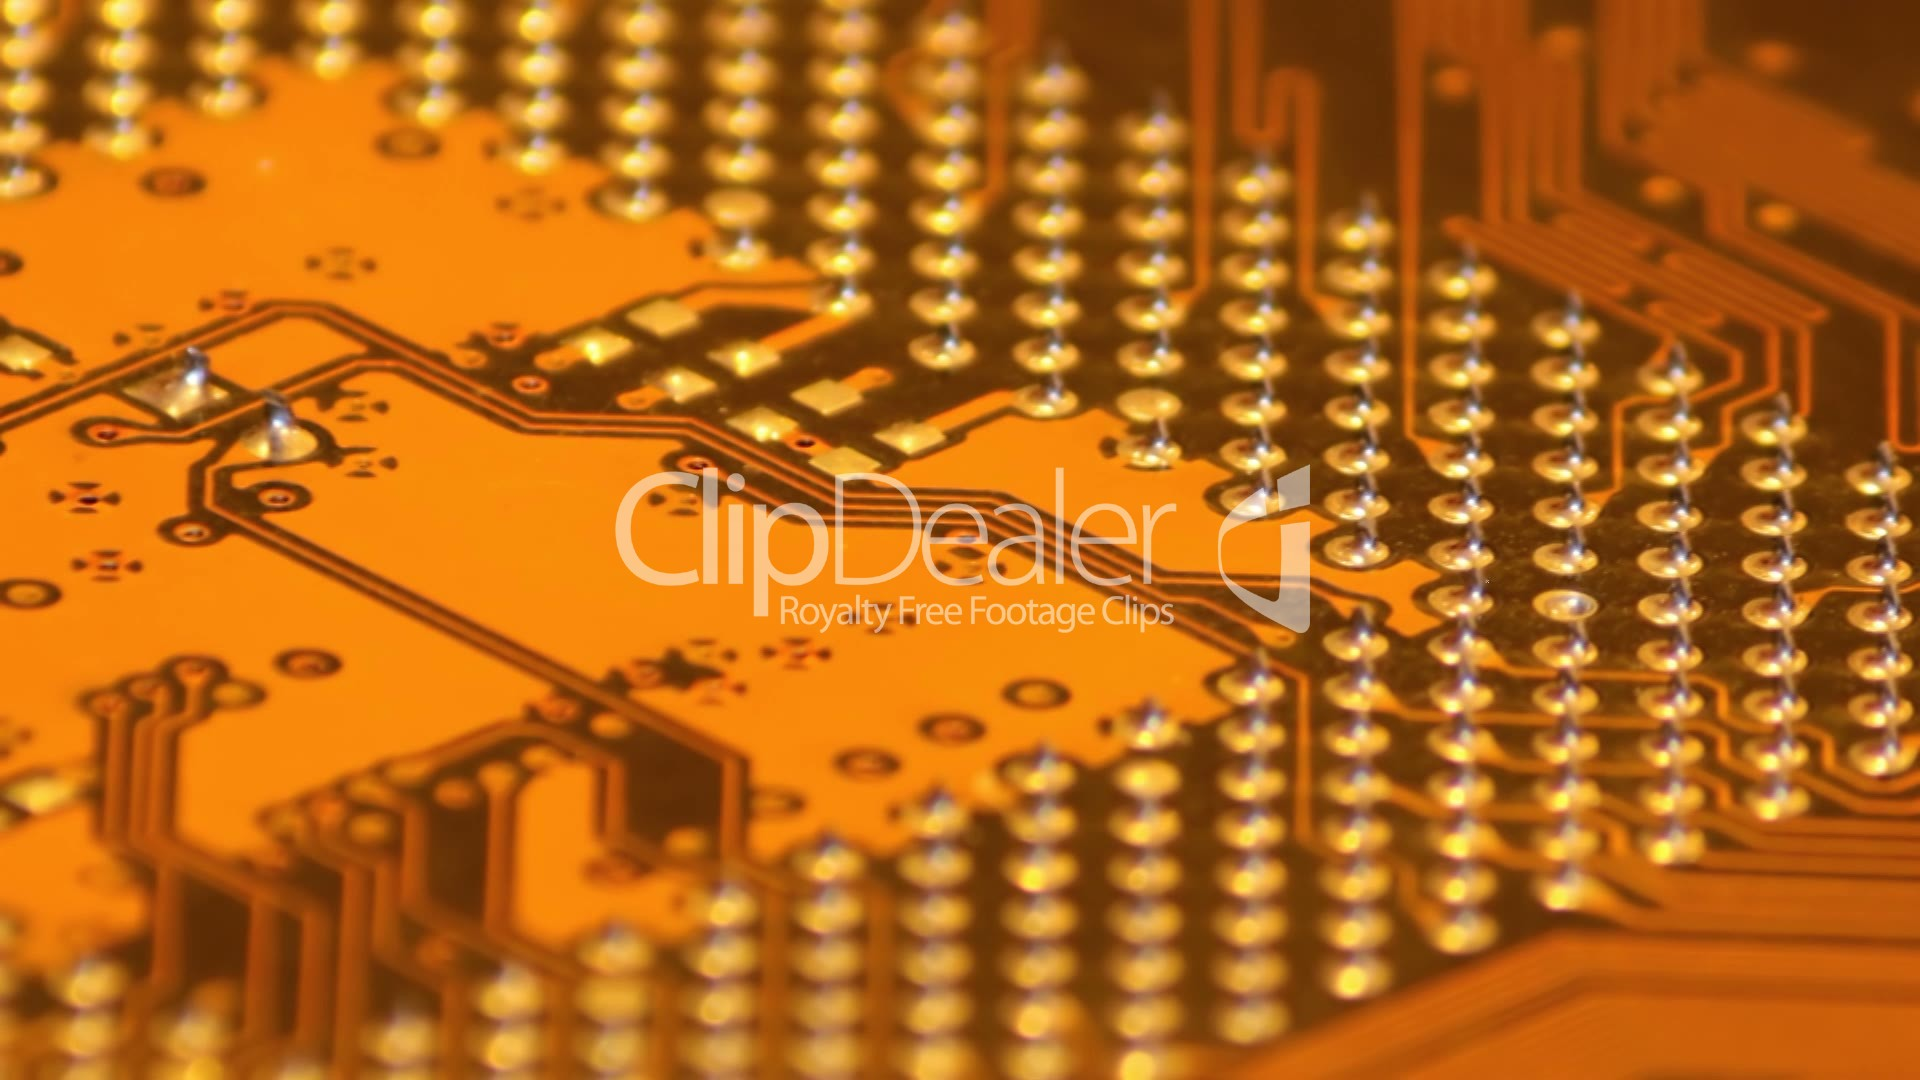 Pcb Printed Circuit Board Royalty Free Video And Stock Footage Repair Electronic Images Image Processor Technology Videos